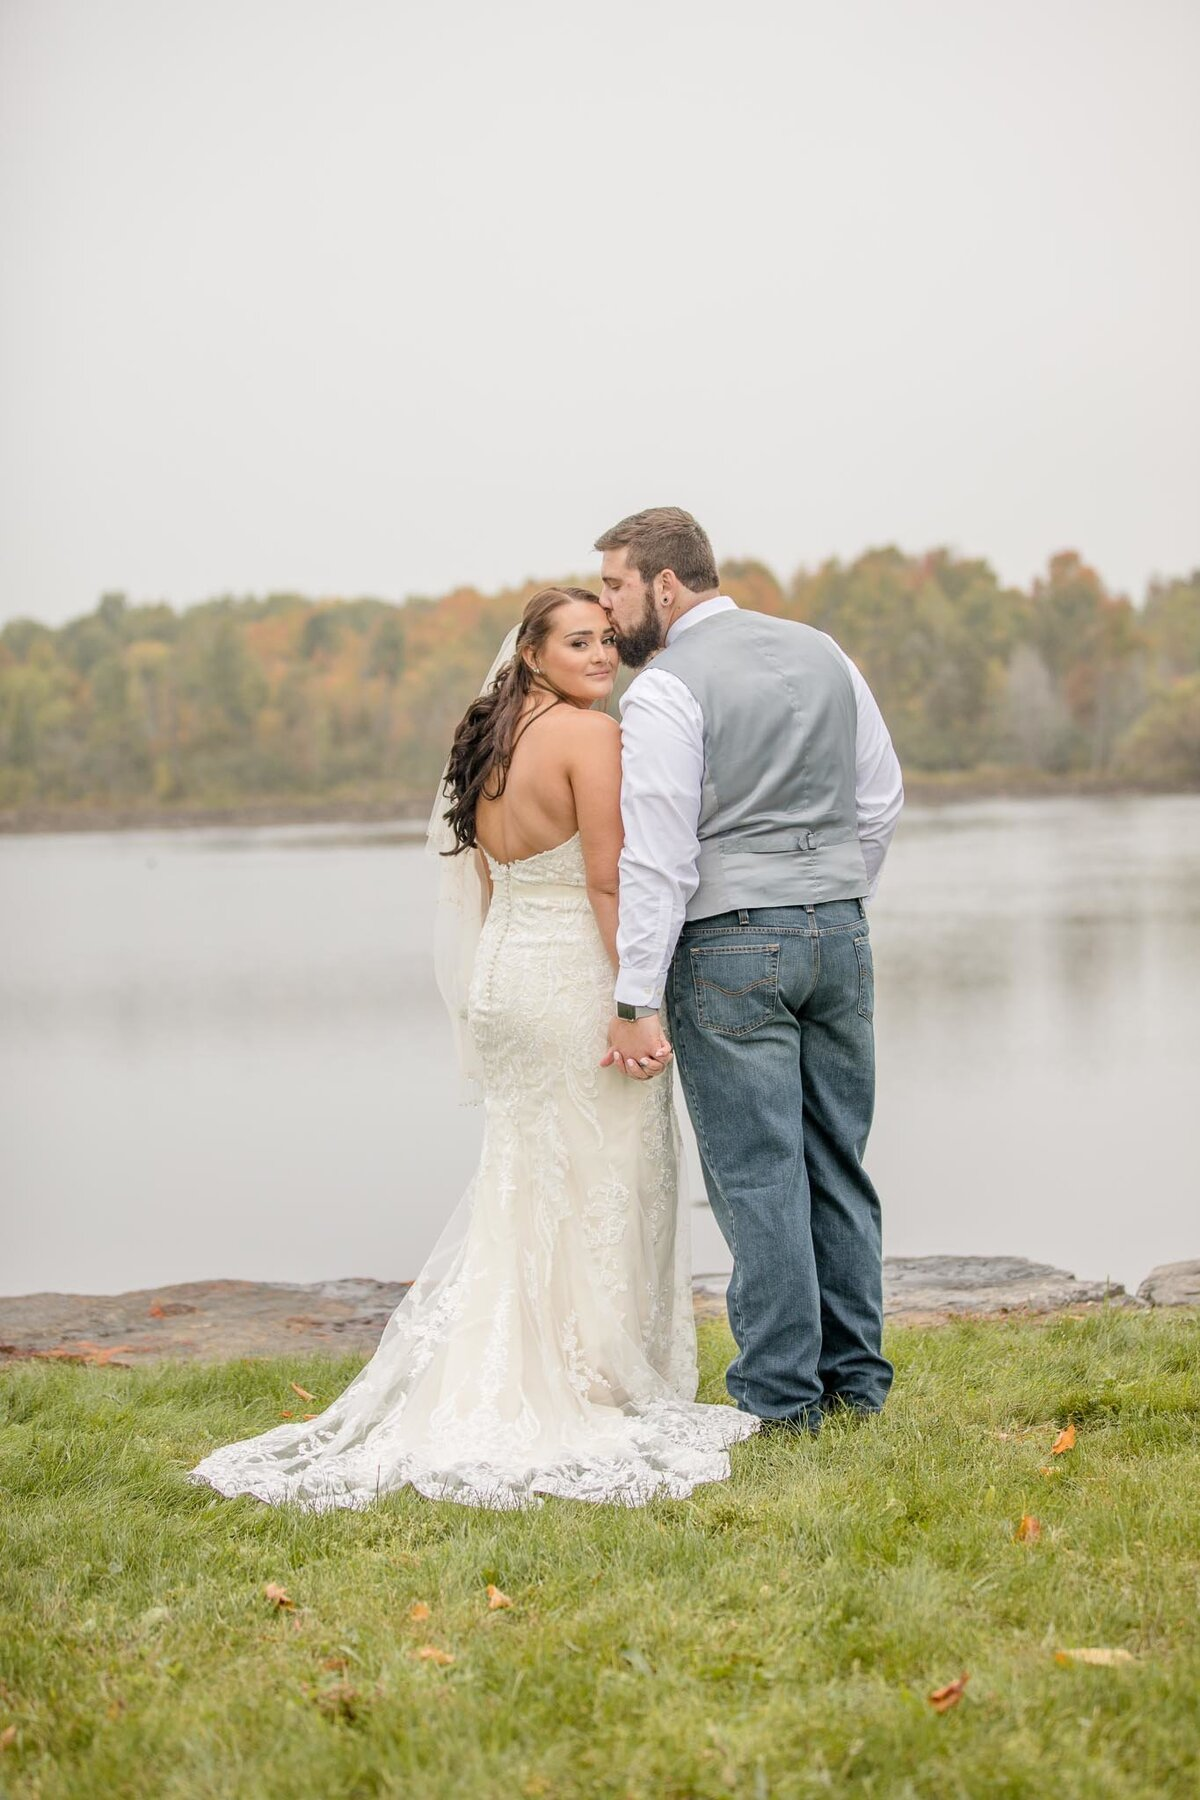 Rachel-Elise-Photography-Syracuse-New-York-Wedding-Photographer-46